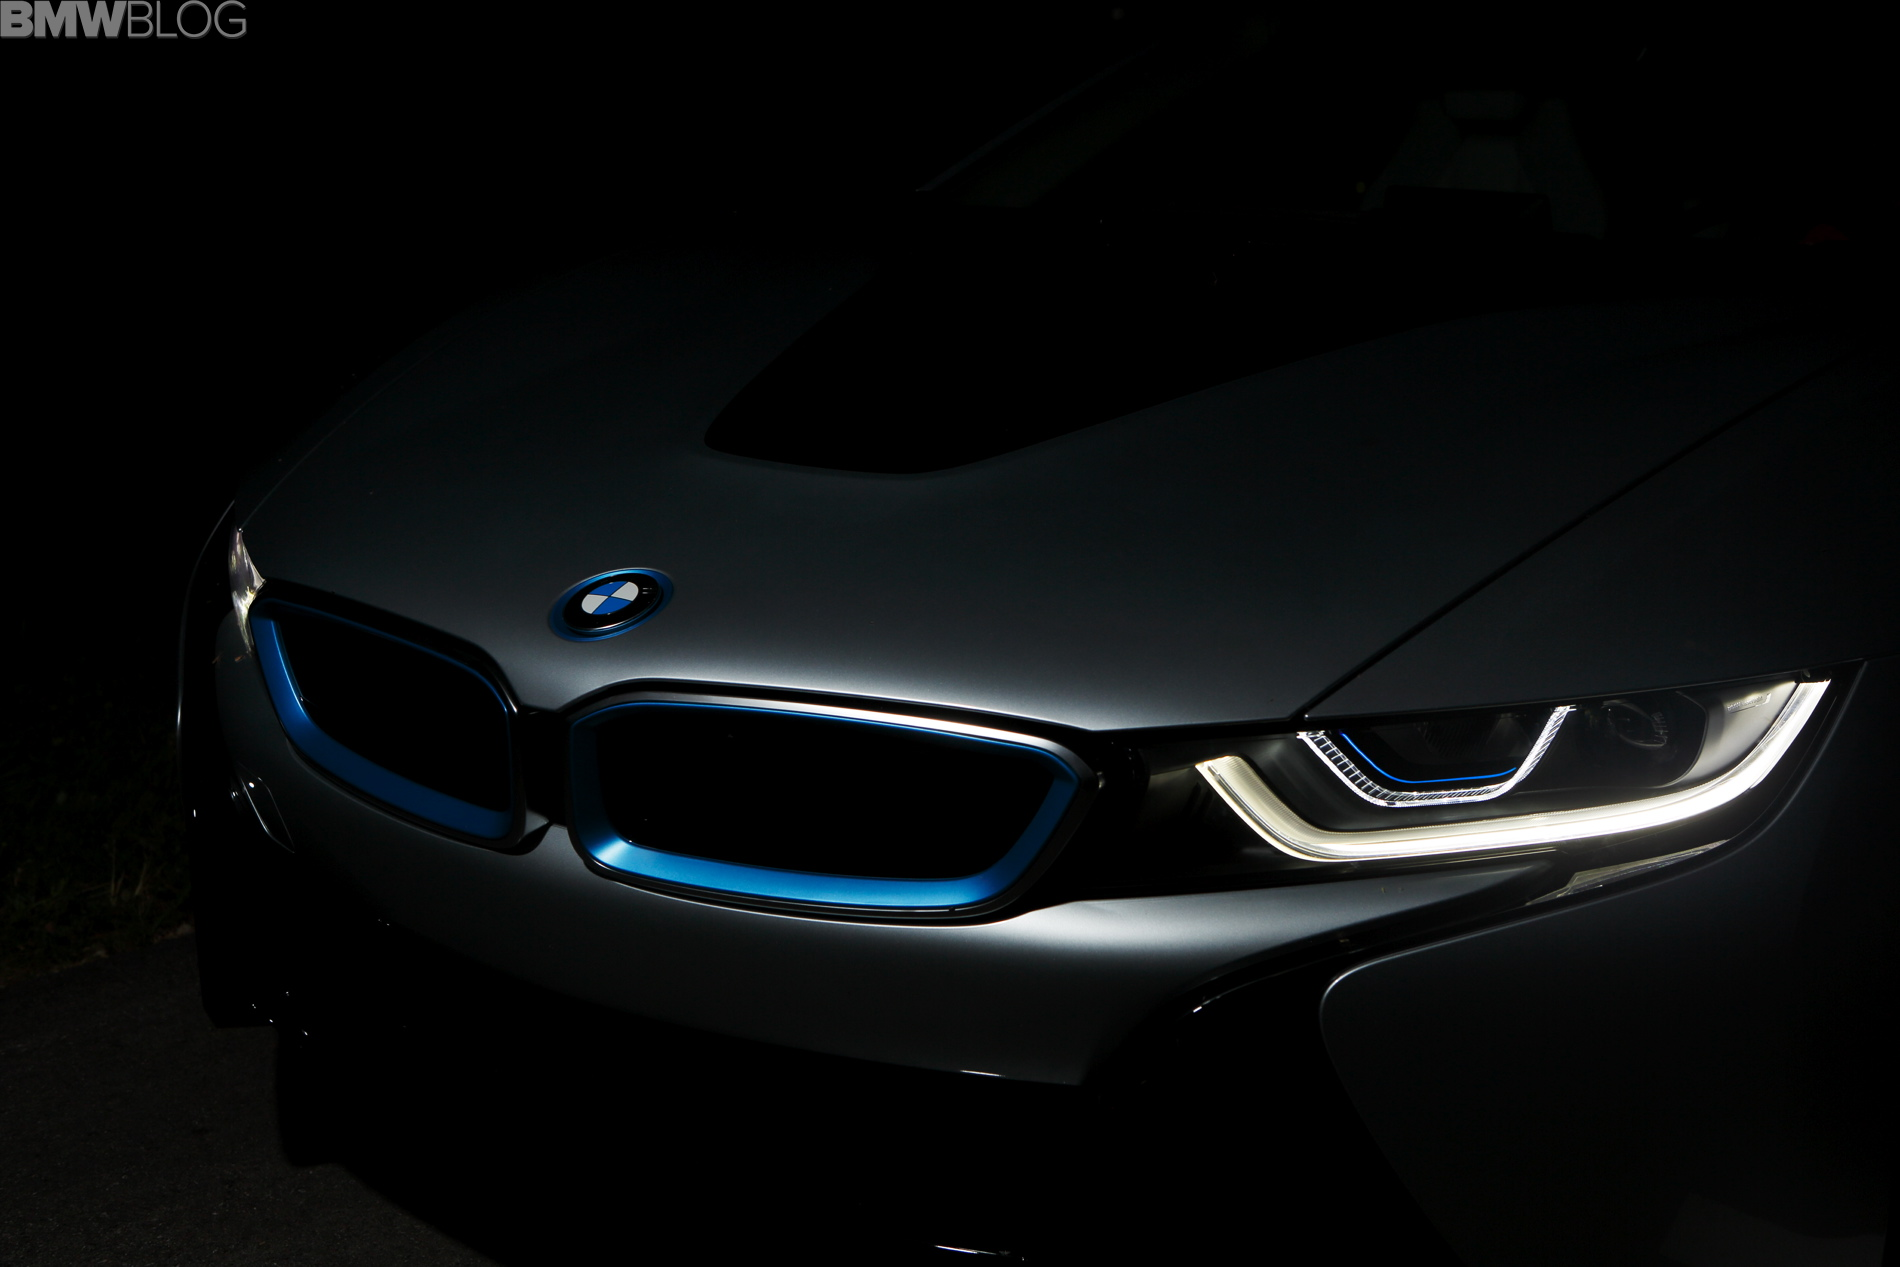 Exclusive: BMW i8 Laser Lights Will Cost 9,500 Euros